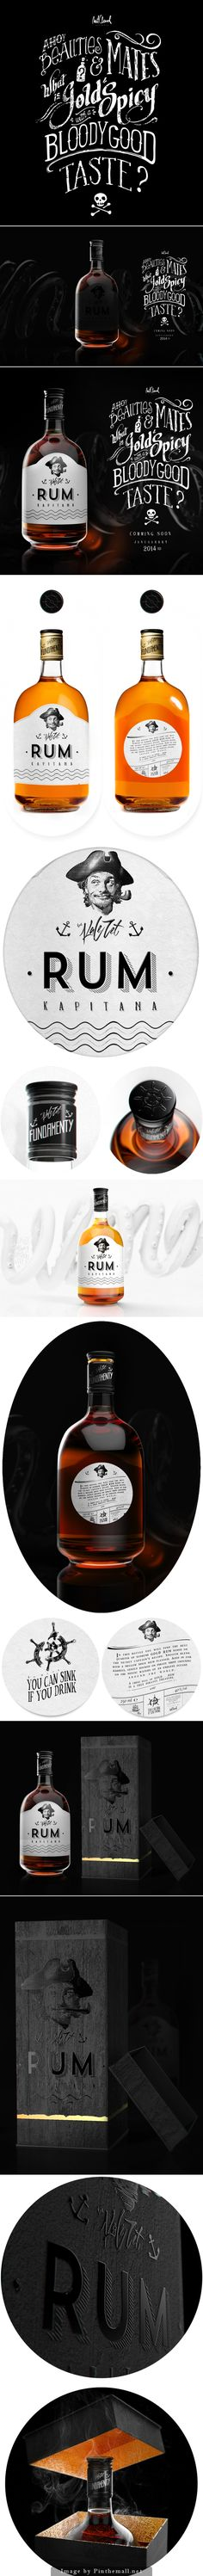 Mateusz Chmura has created this brand and packaging design for RUM Kapitana. Mateusz is a freelance graphic and product designer with an interwst in typography, photography and Dimensions. Beverage Packaging, Bottle Packaging, Brand Packaging, Packaging Design, Branding Design, Rum Bottle, Liquor Bottles, Graphic Design Typography, Lettering Design